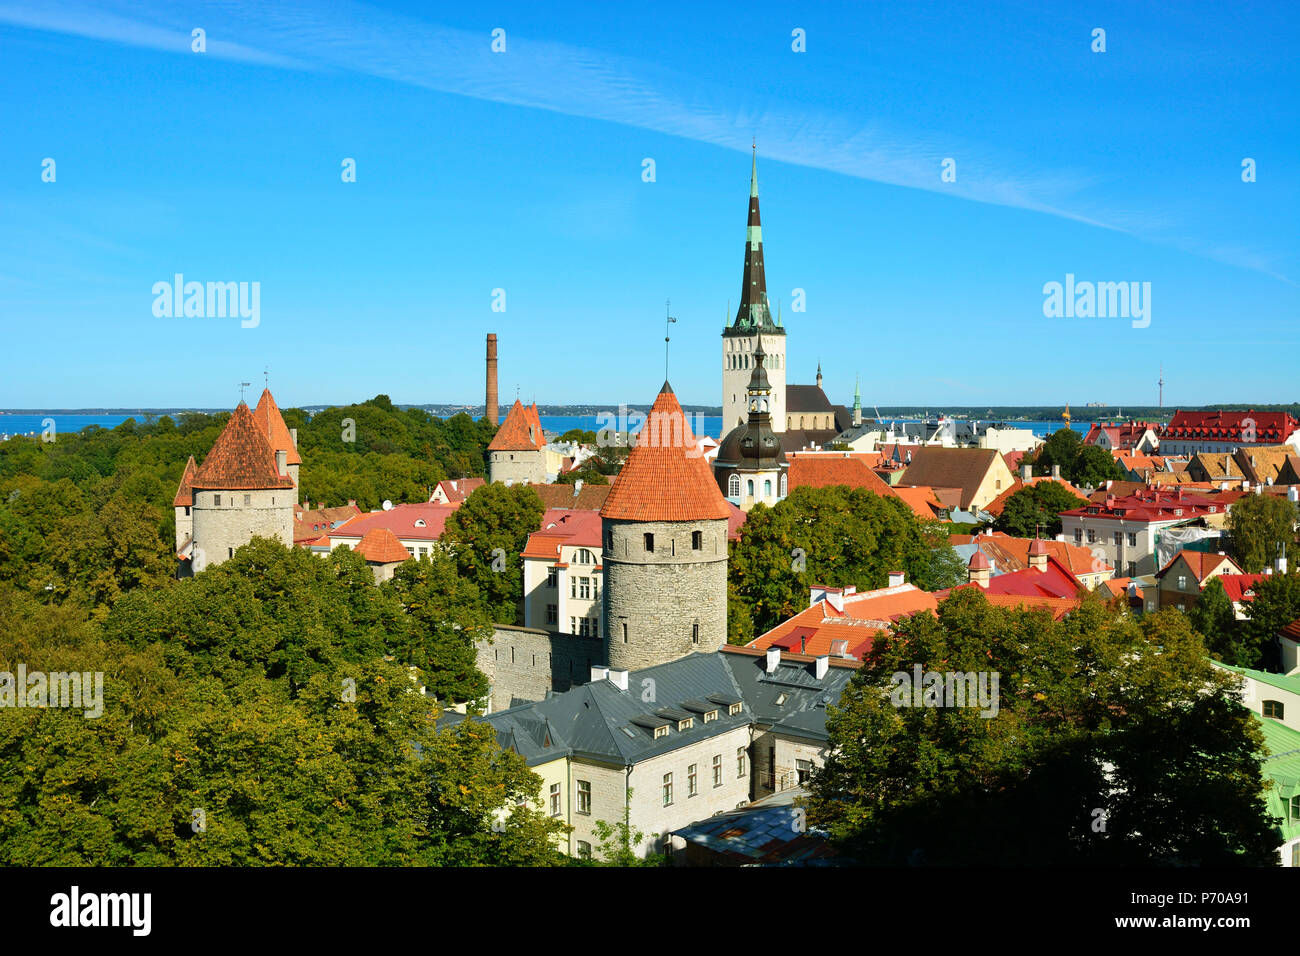 Old Town of Tallinn, a Unesco World Heritage Site. Tallinn, Estonia - Stock Image